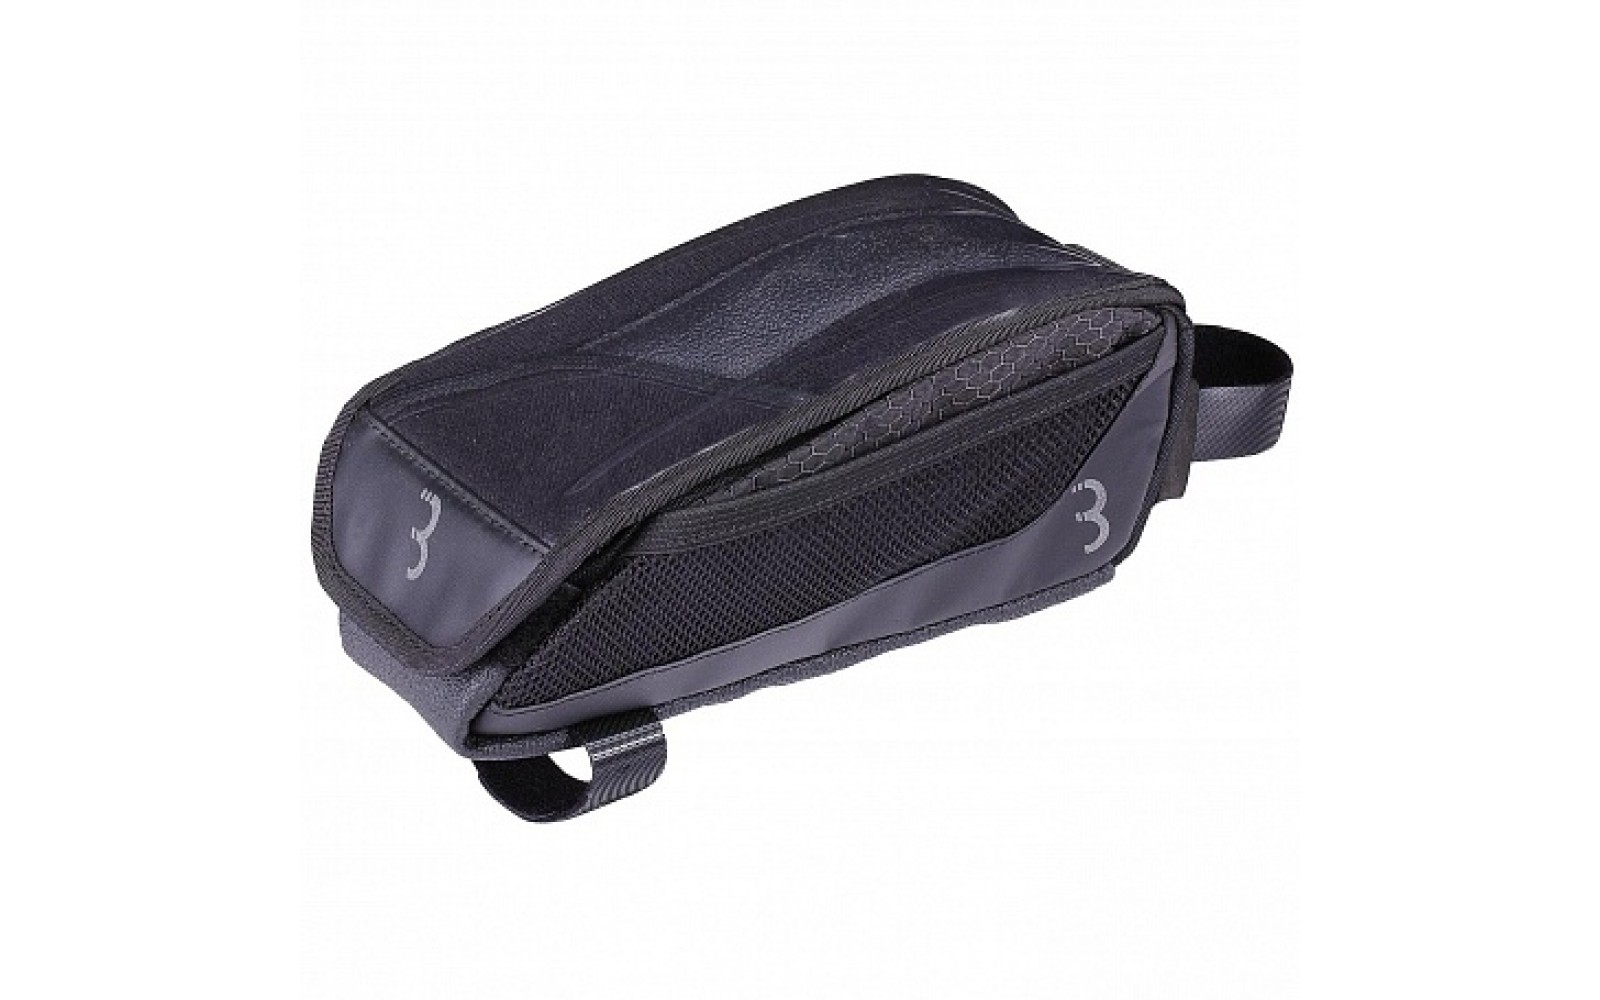 """Велосумка BBB 2019 tubebag TopTank toptube bag with phone pouch 20 x 9.5 x 8.5cm - 0.75L black <i class=""""icon product-card_star-mask""""></i>"""